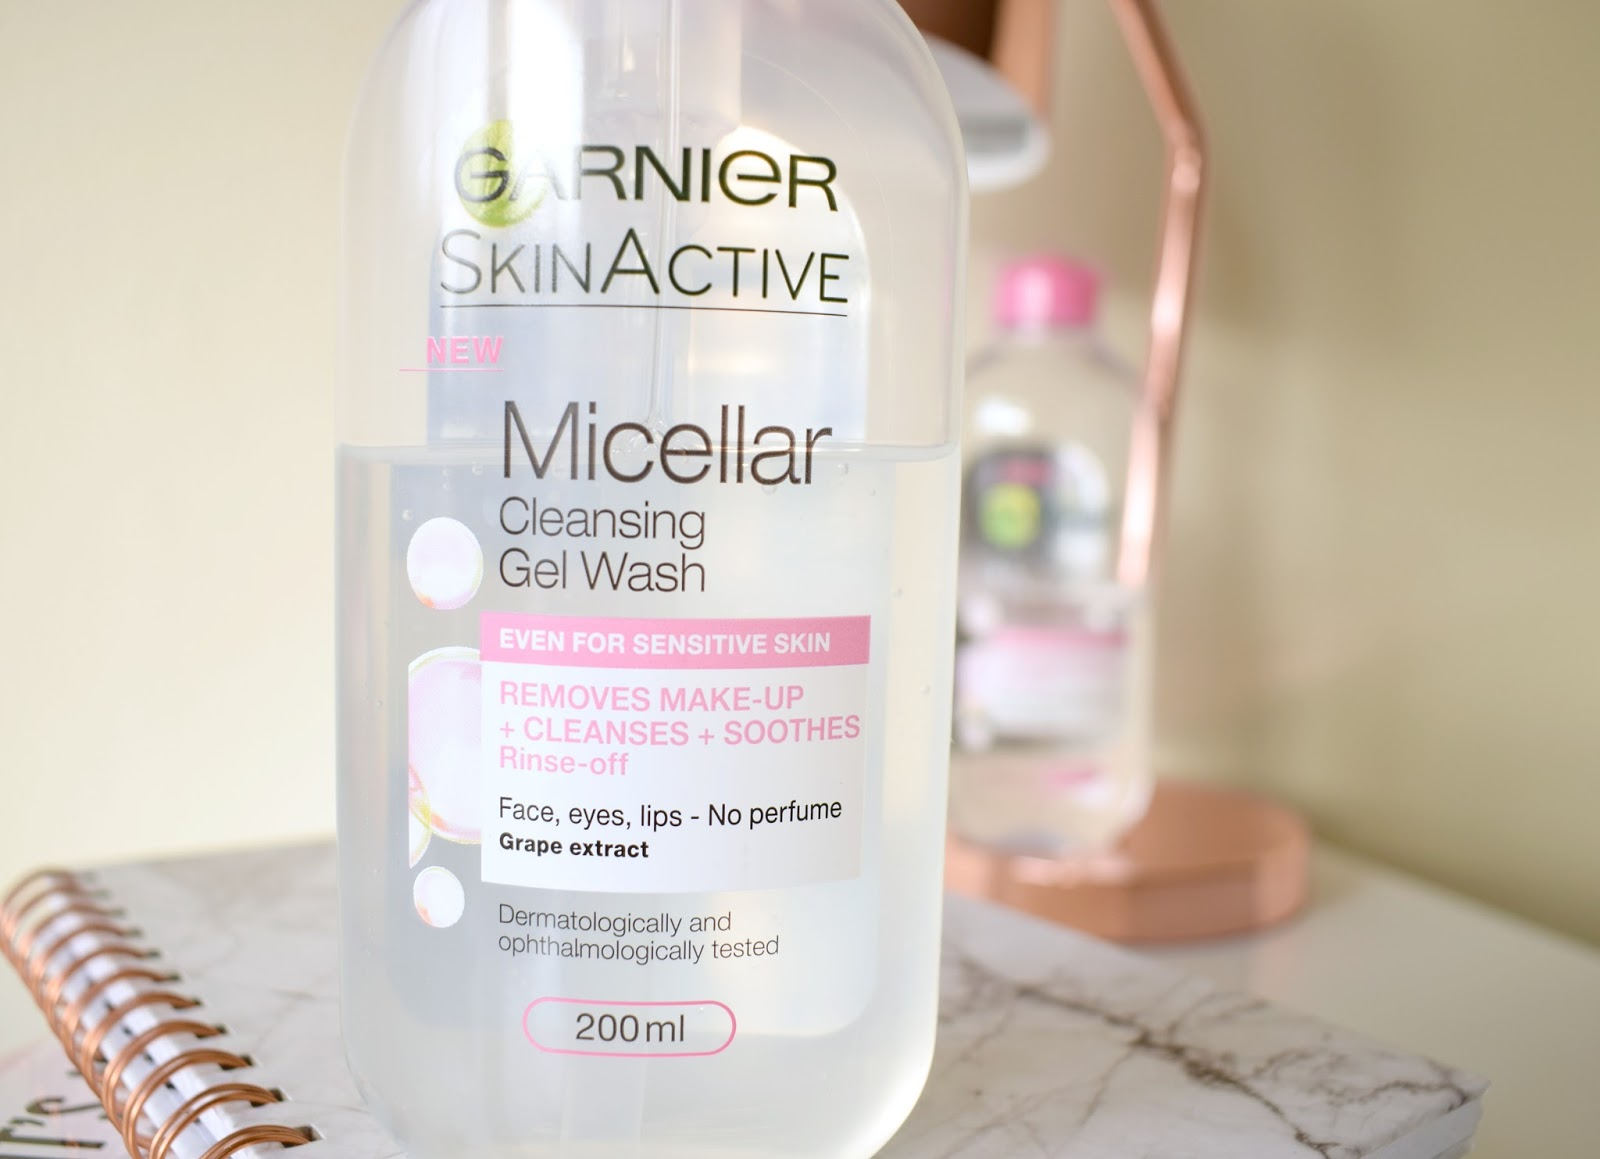 Garnier Micellar Cleansing Gel Wash Facial Cleanser Foaming Face Wash Review Beauty Blogger UK Natasha Kendall SLS PH SKIN ACID MANTLE GOOD OR NOT SUPERDRUG BOOTS first impression and review